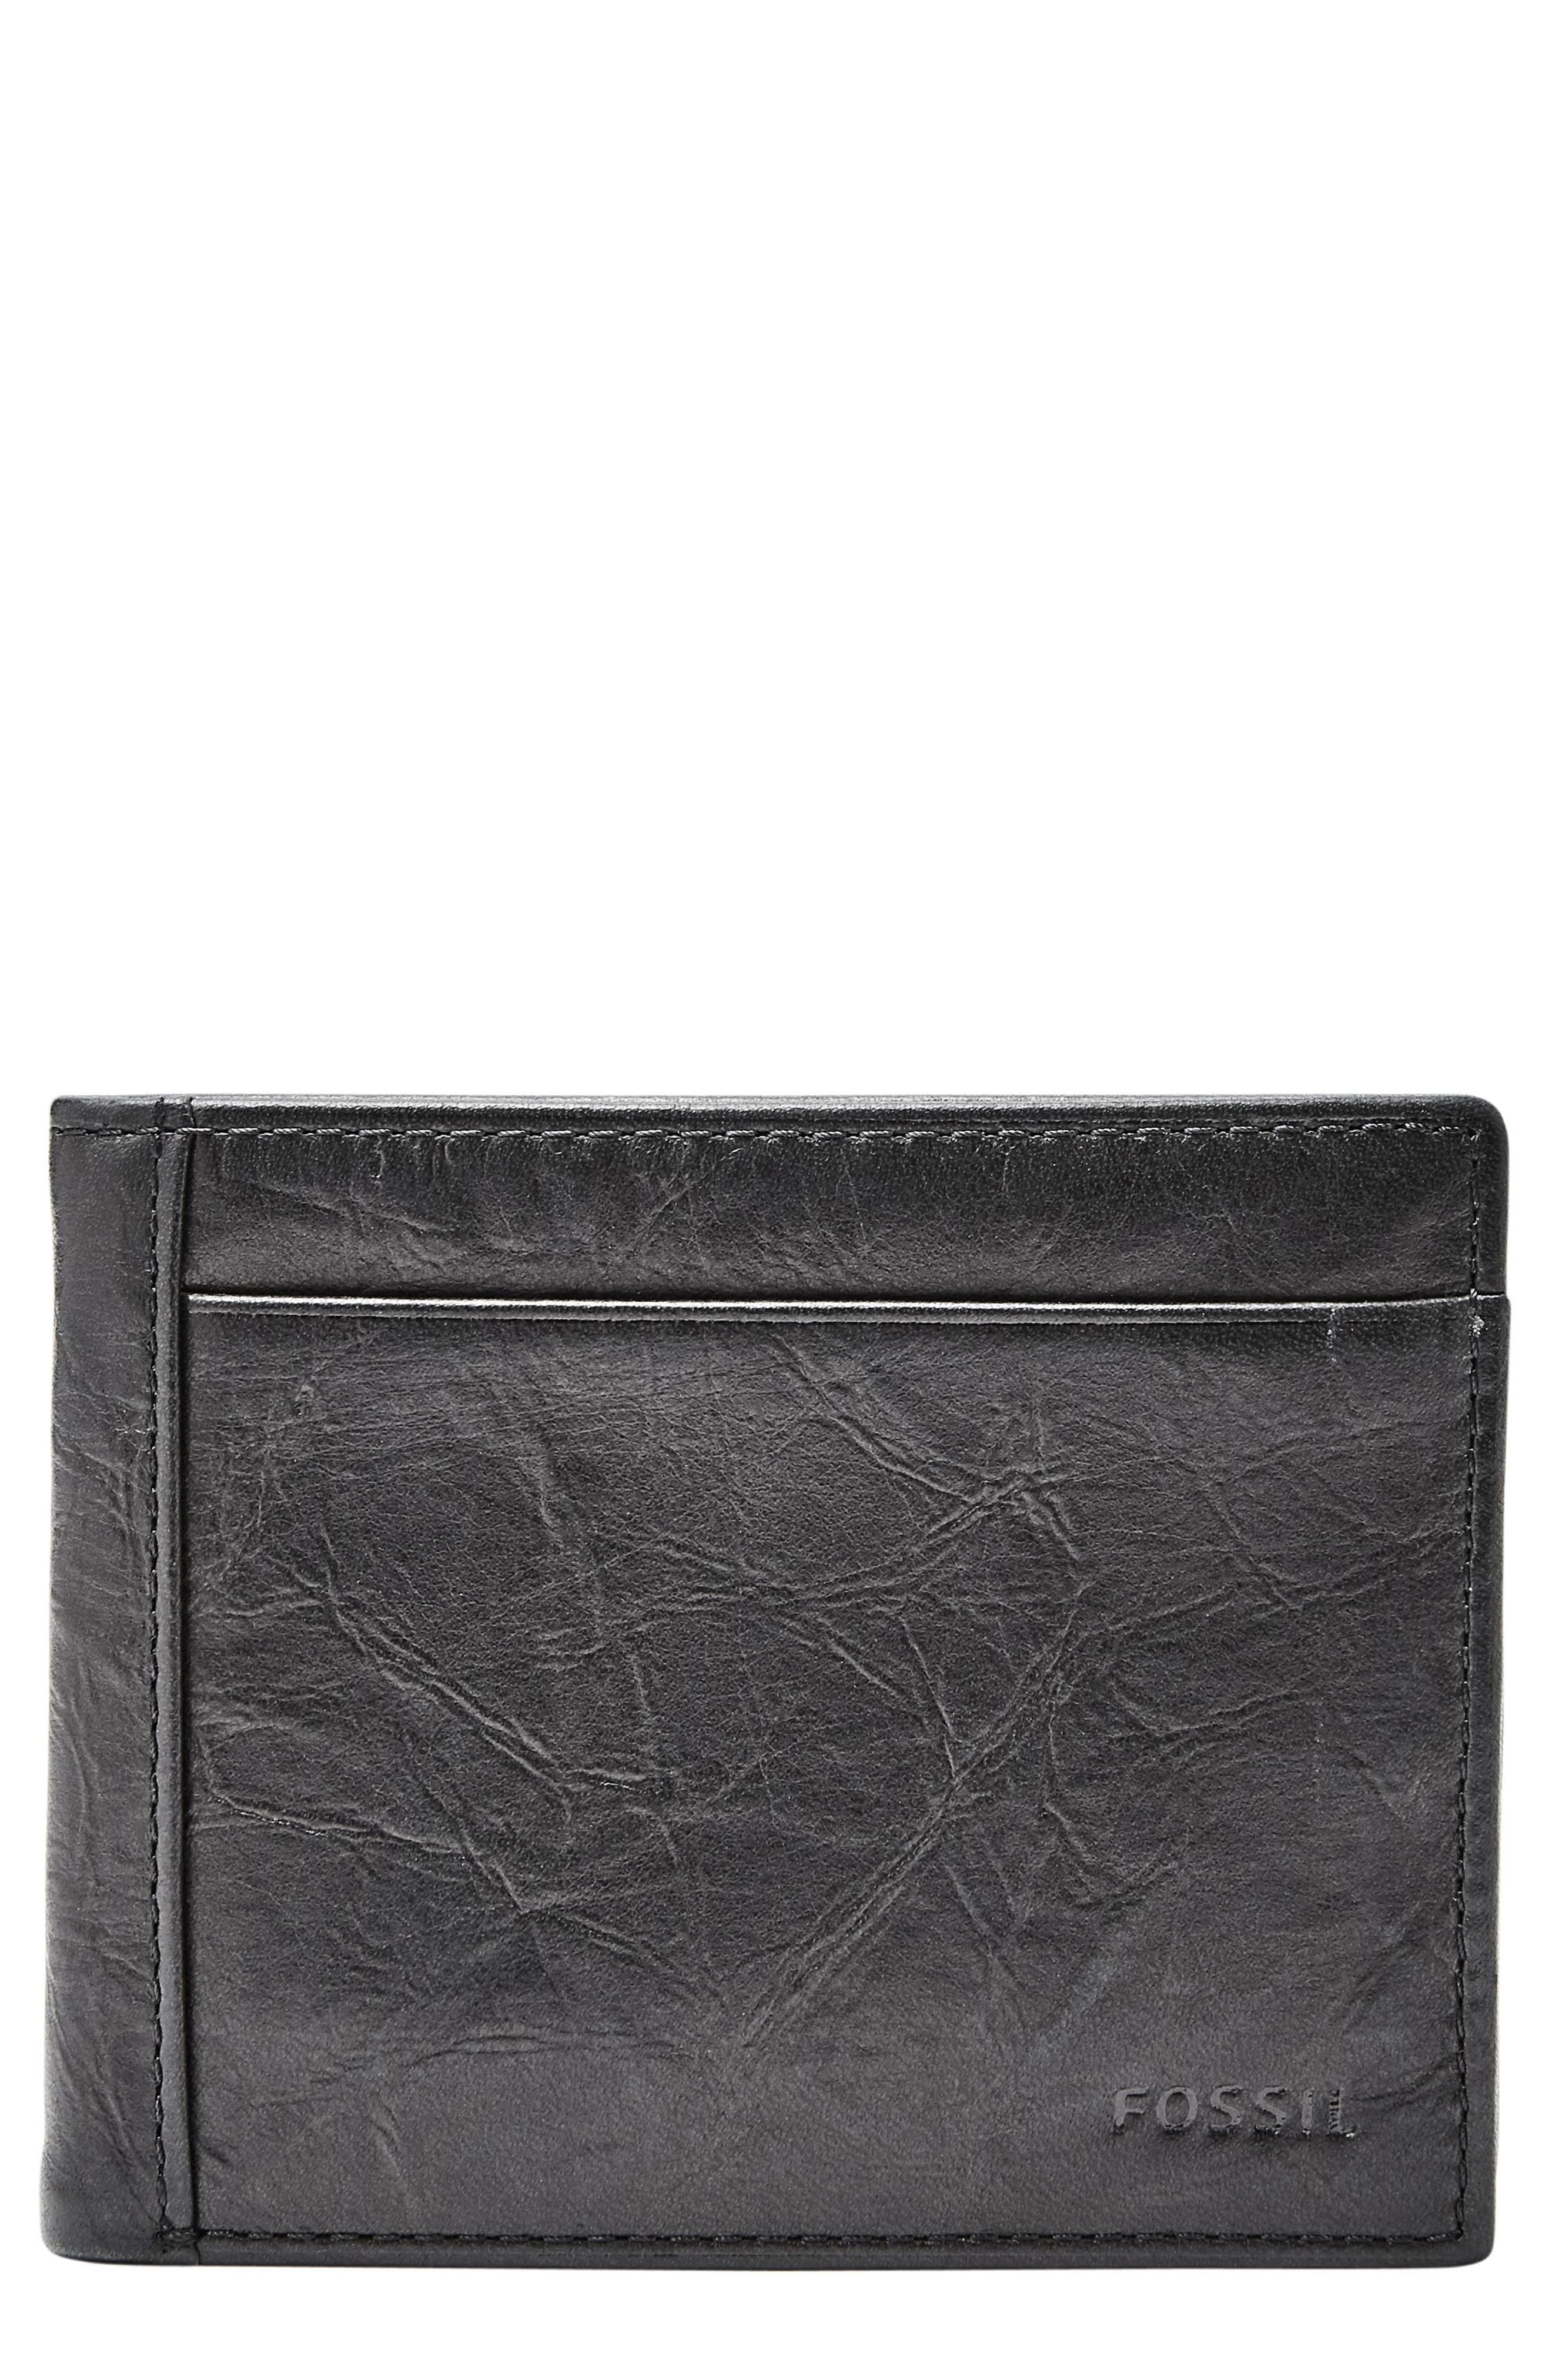 FOSSIL, Leather Wallet, Main thumbnail 1, color, BLACK